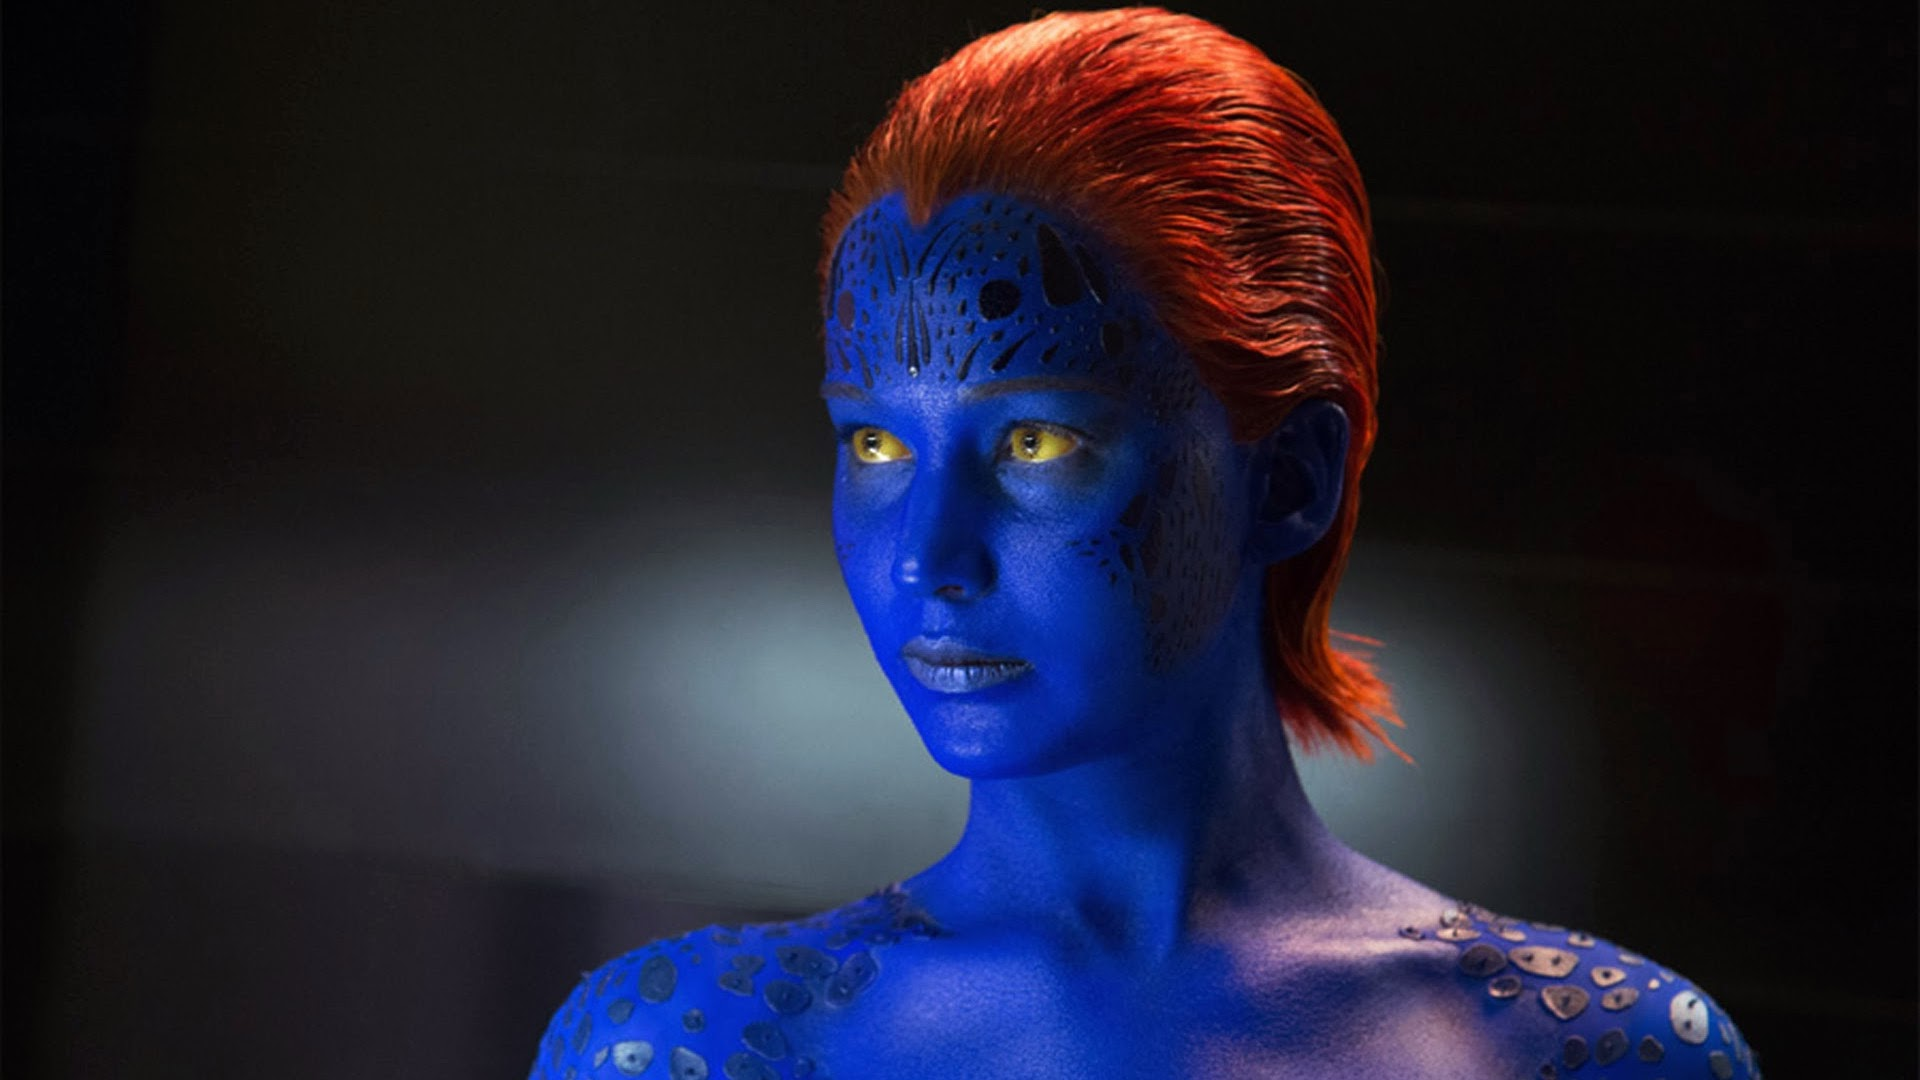 x men days of future past characters